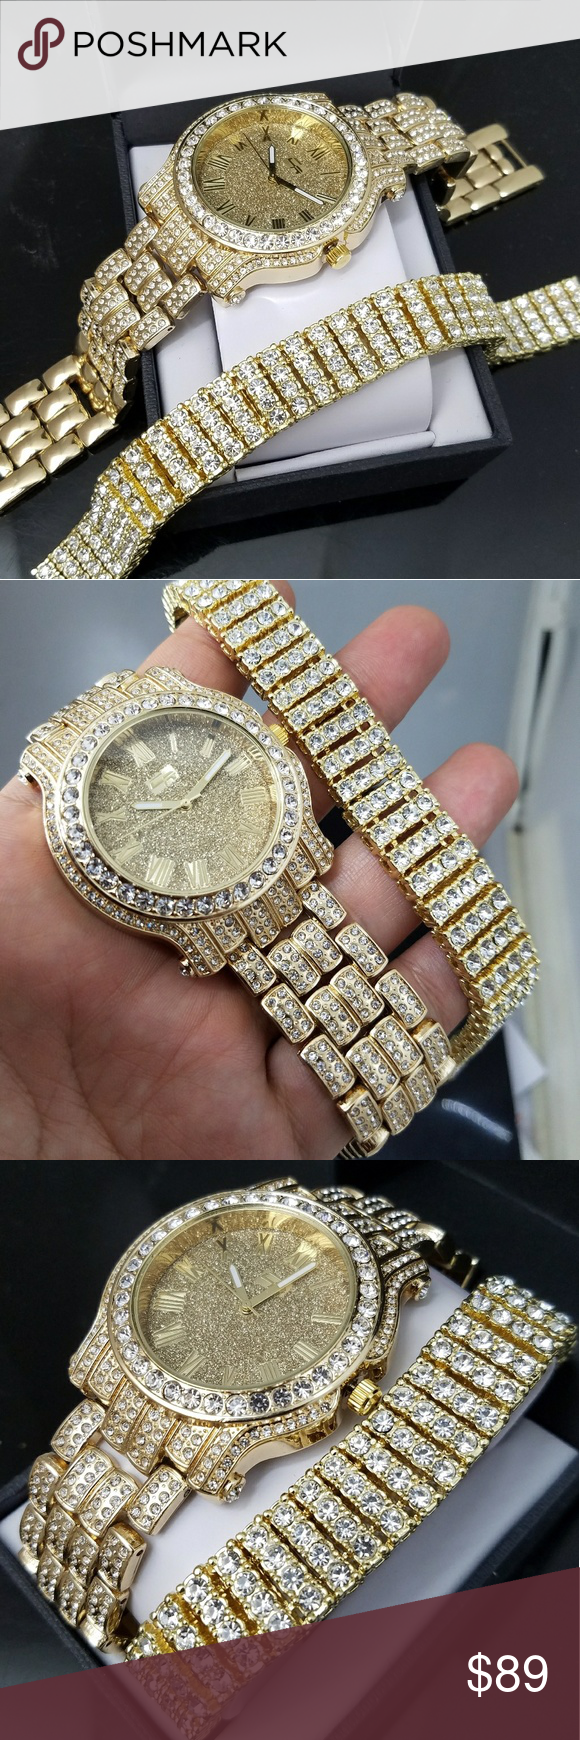 Gold plated iced out watch and bracelet combo set boutique my posh